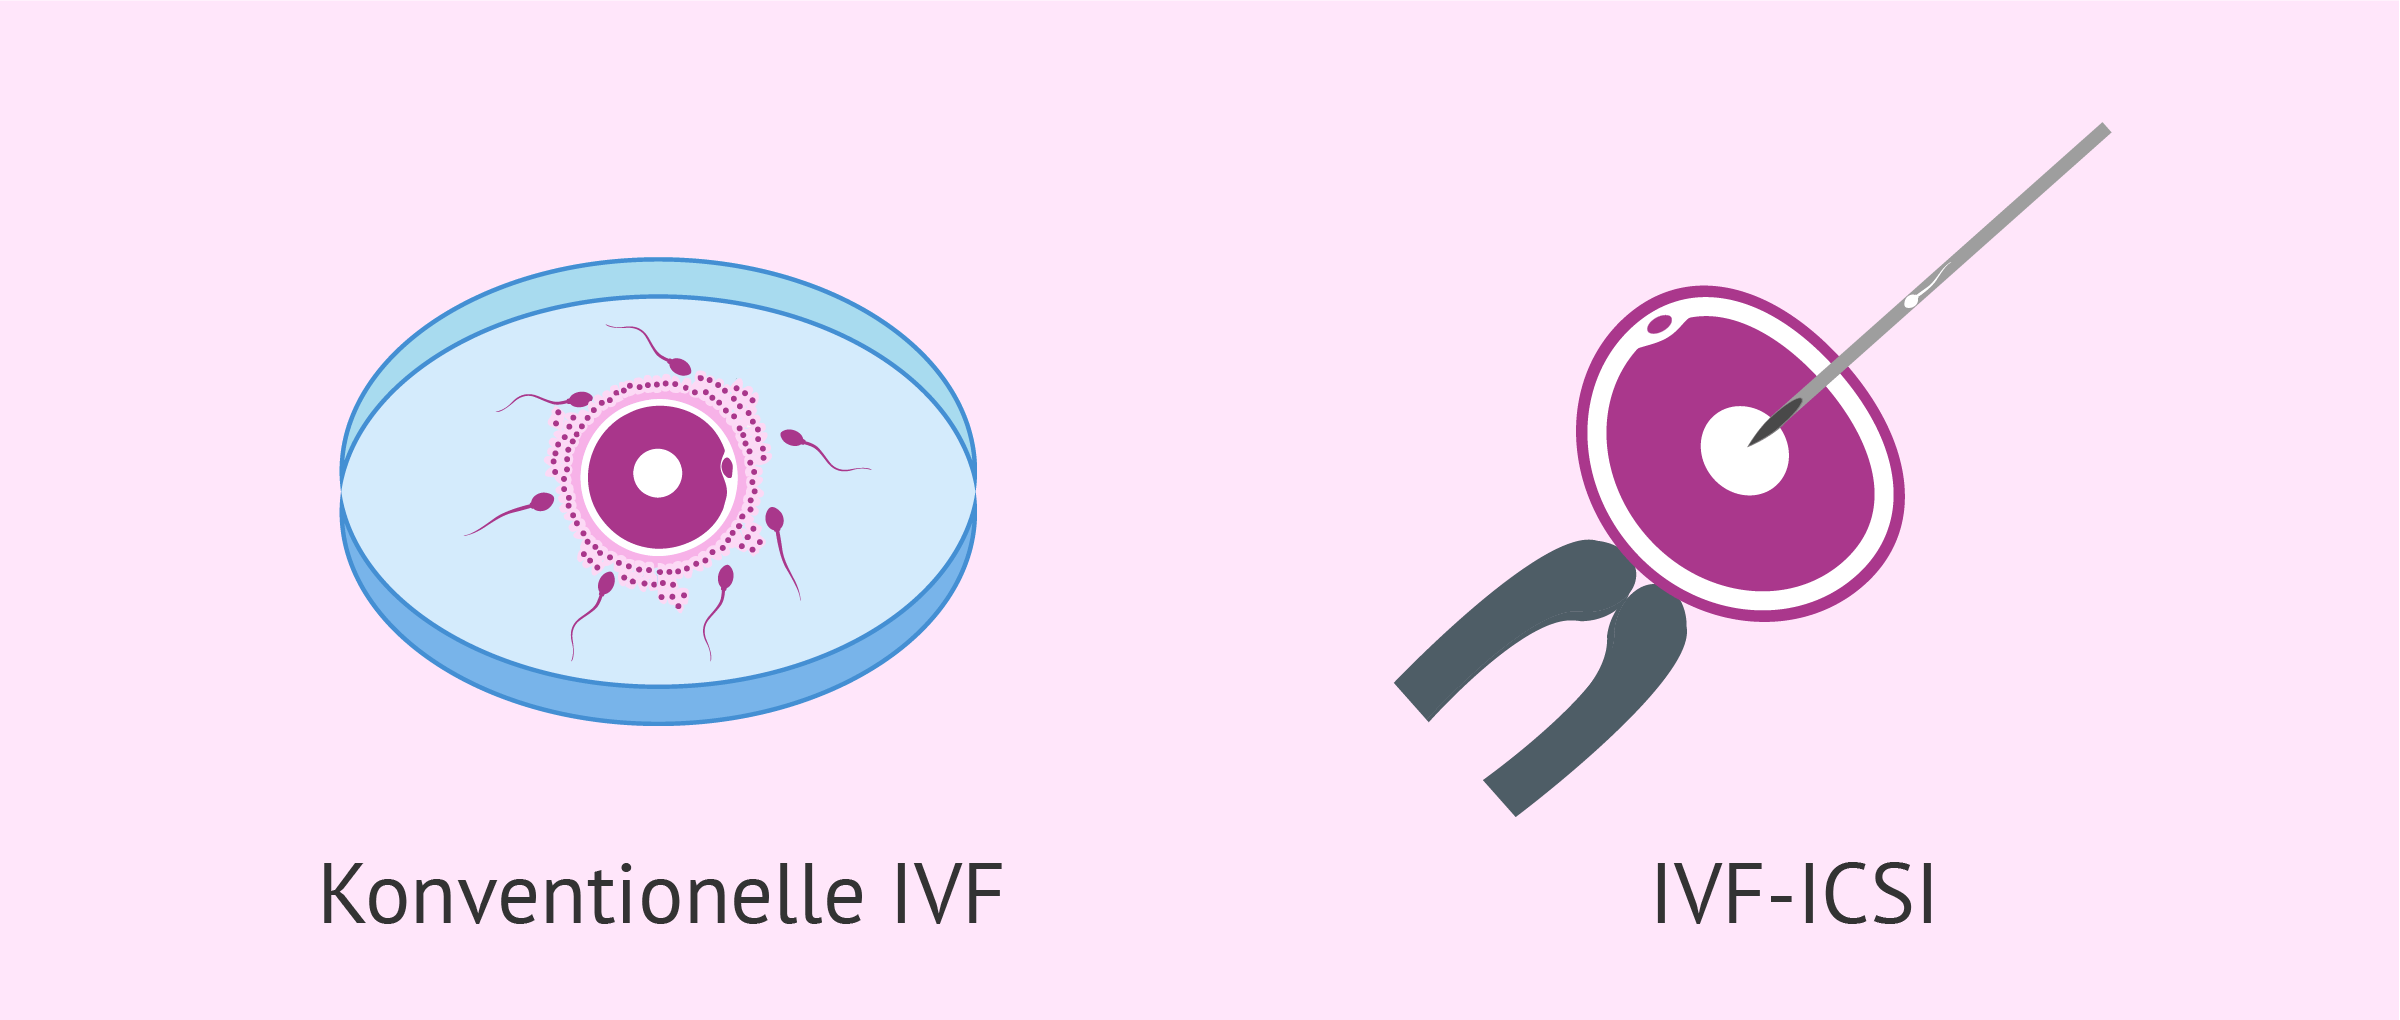 Die In-vitro-Fertilisation (IVF)